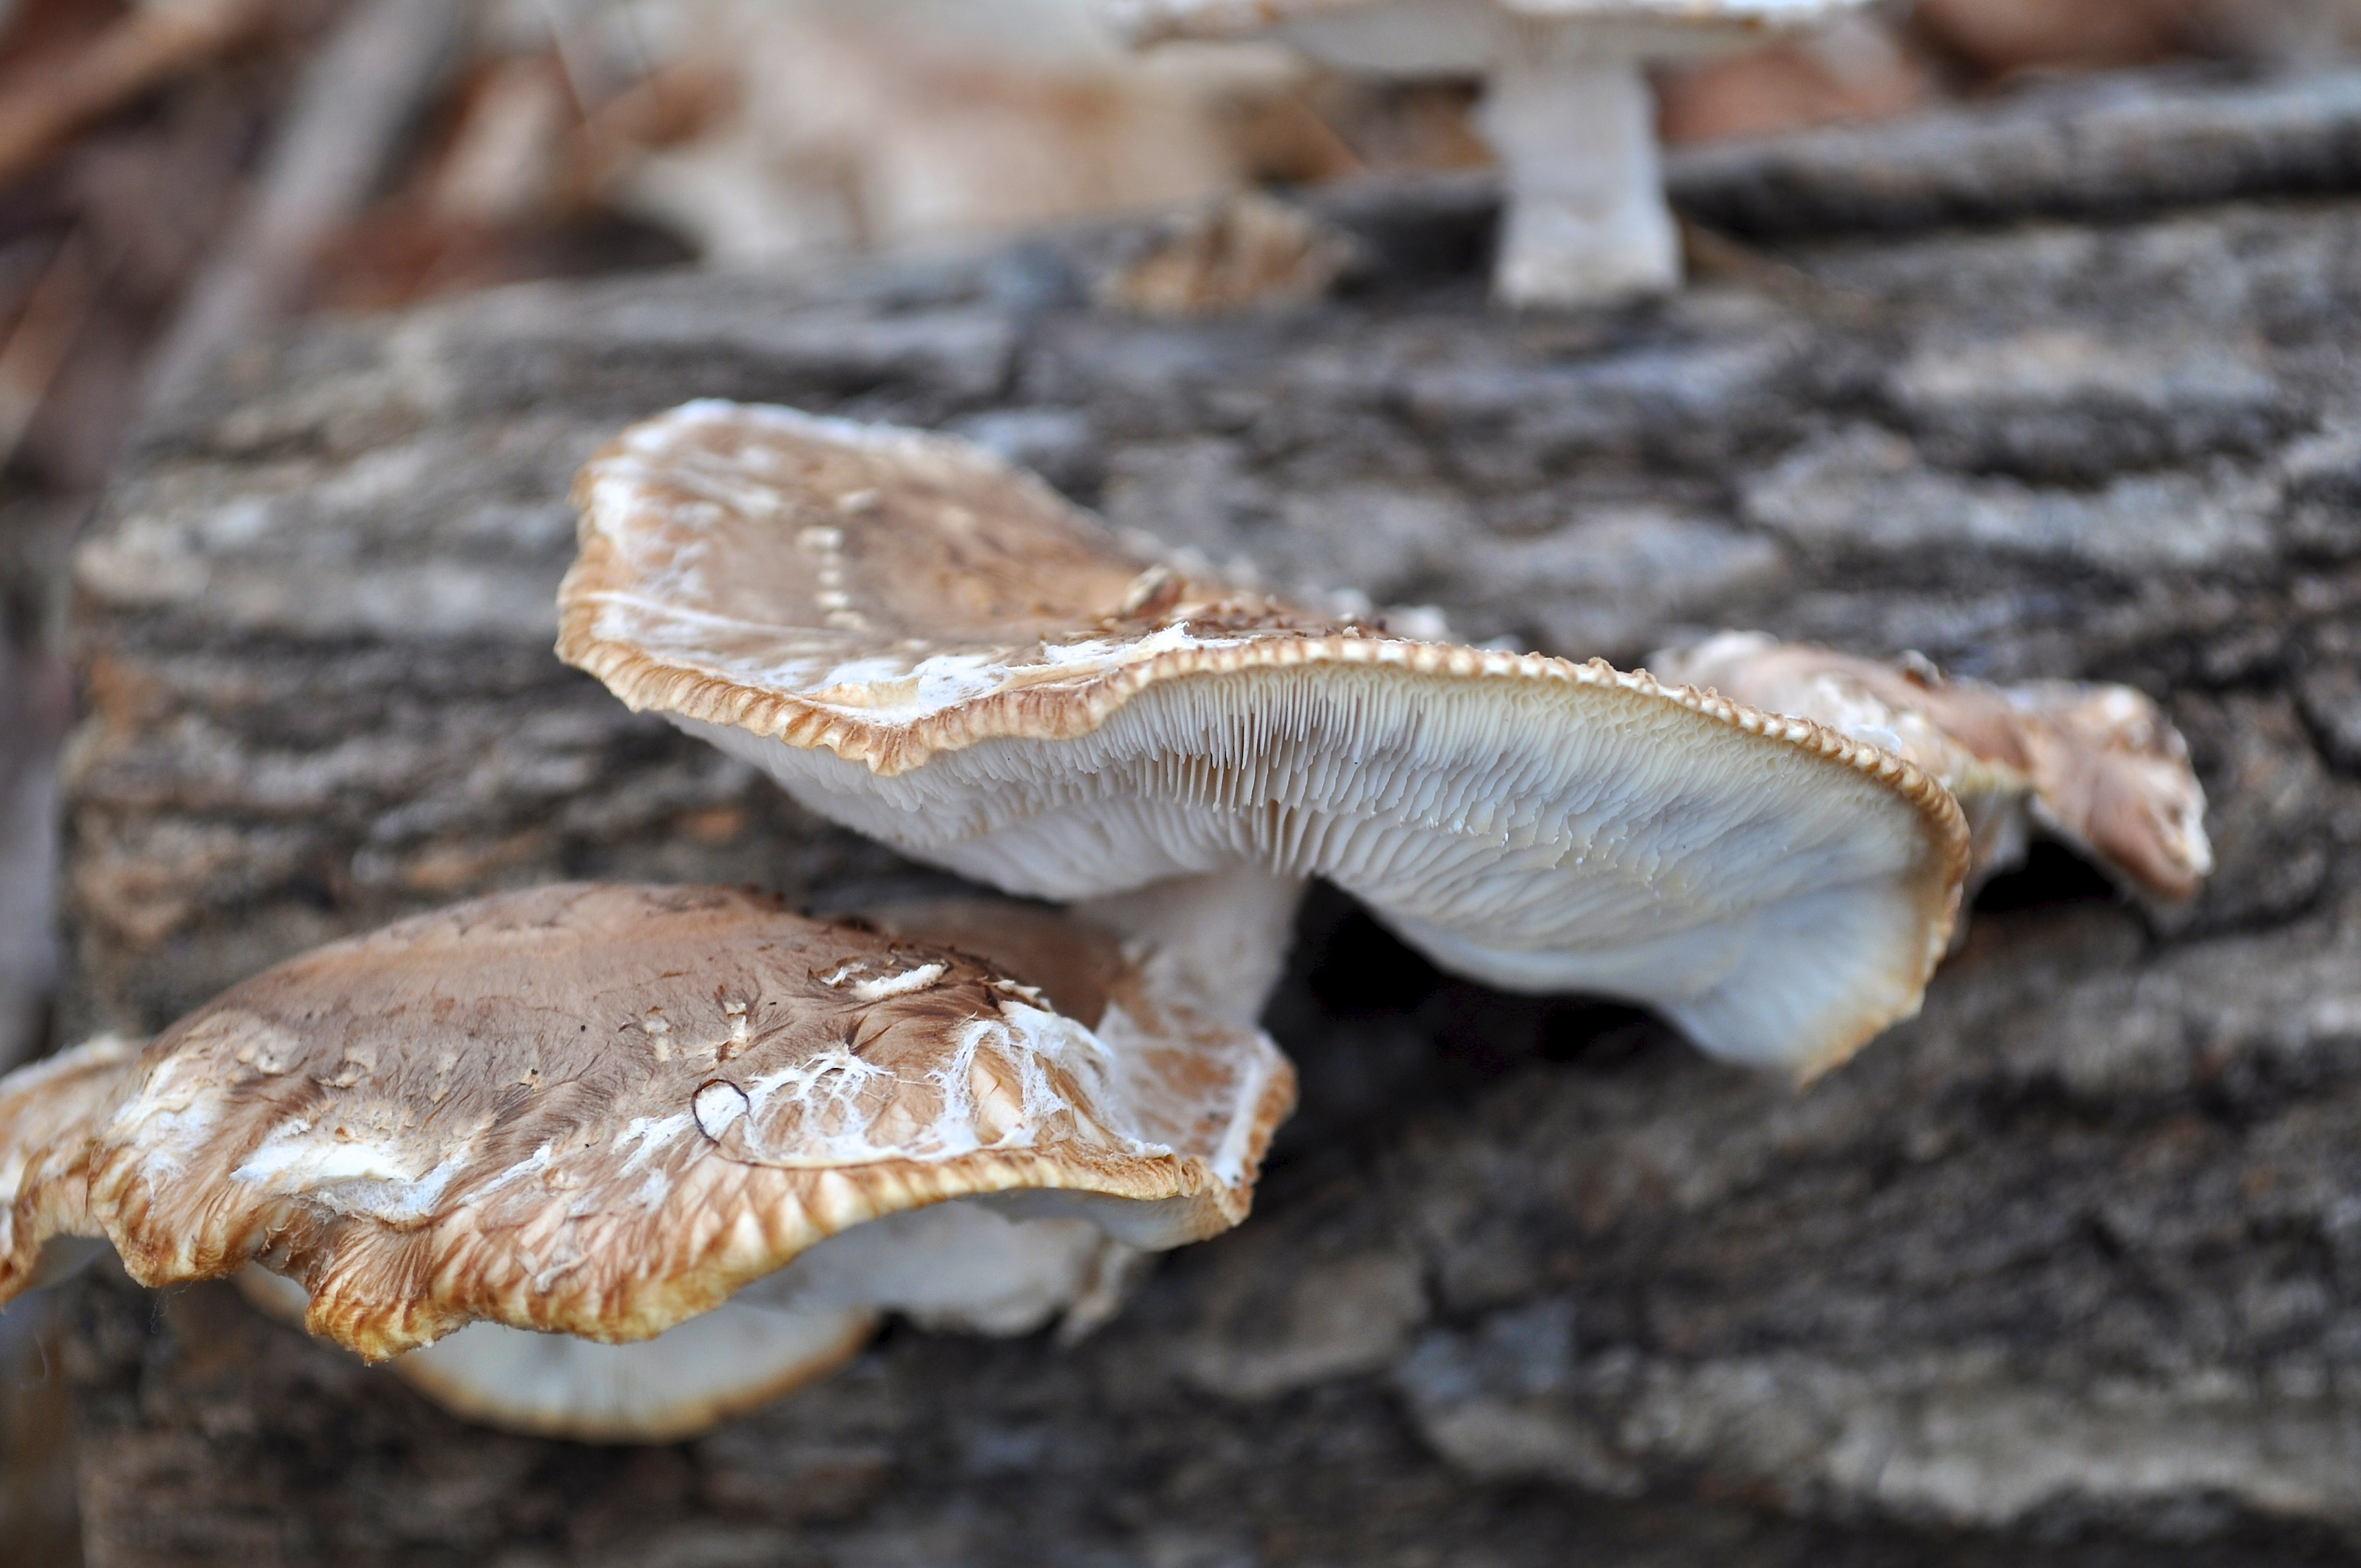 When the shiitake flattens out and no longer has curled edges, it is over ripe.